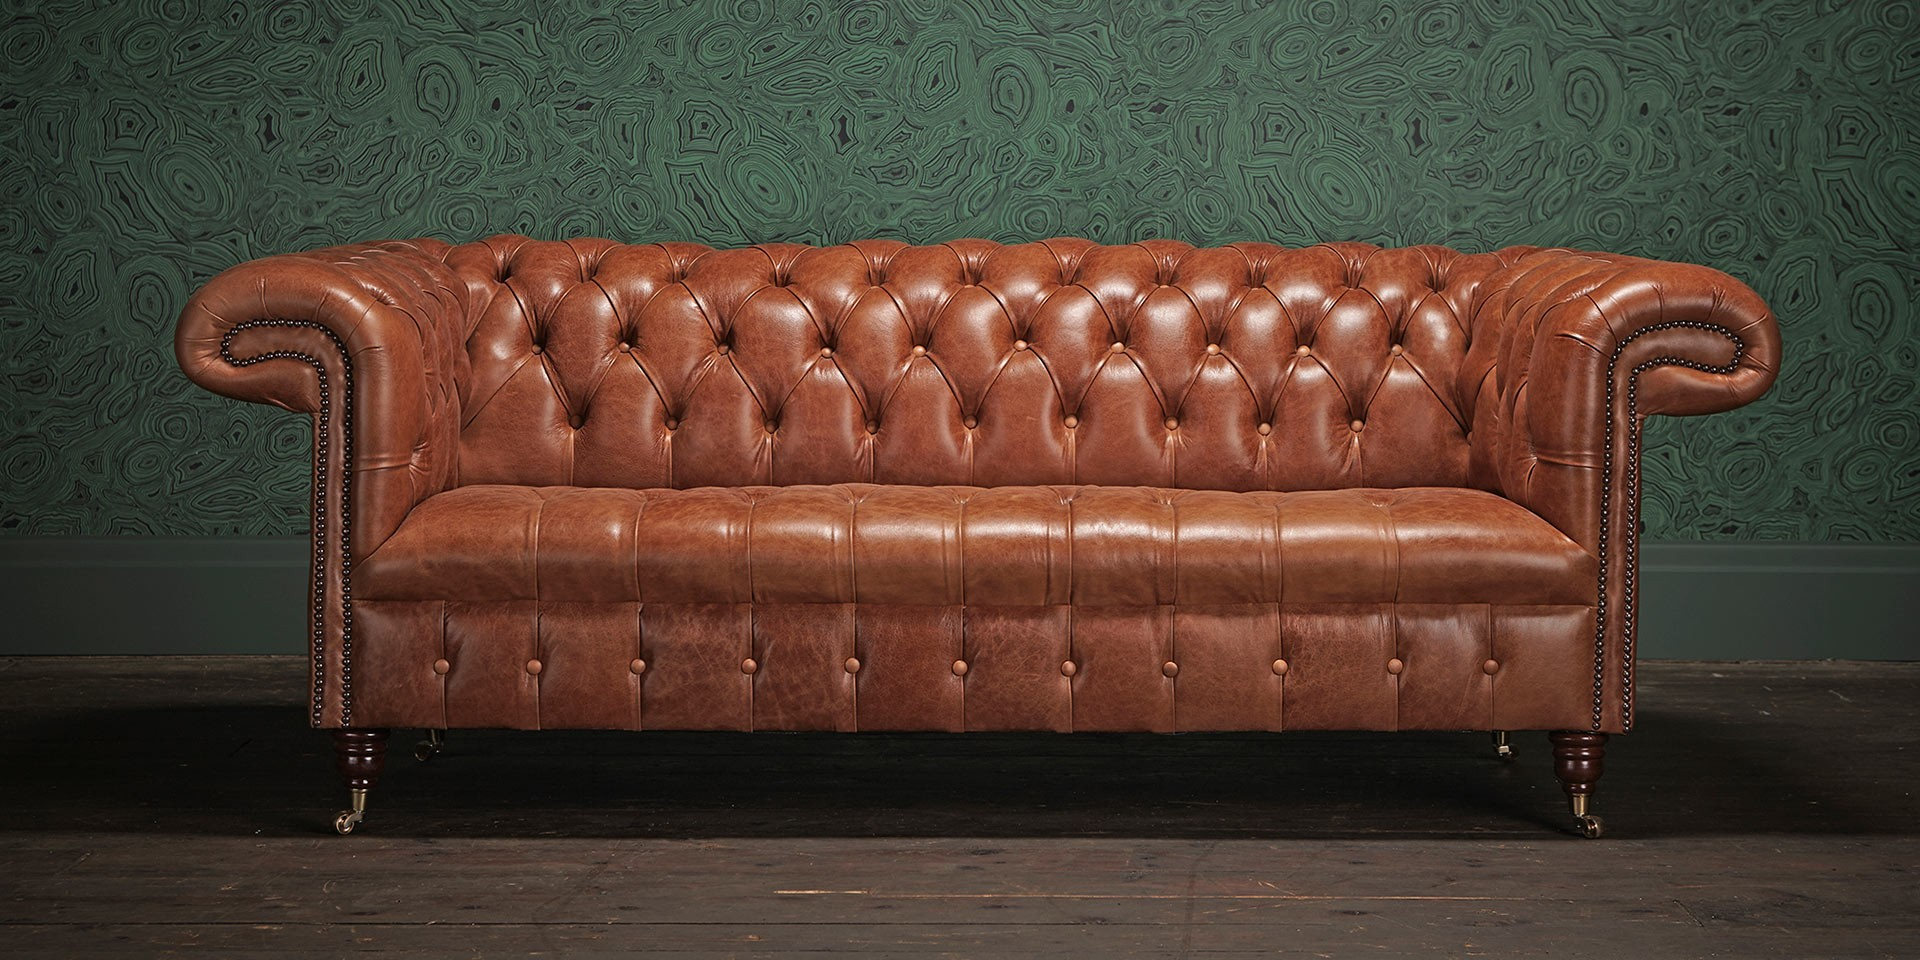 Canapé Chesterfield Maroon Convertible